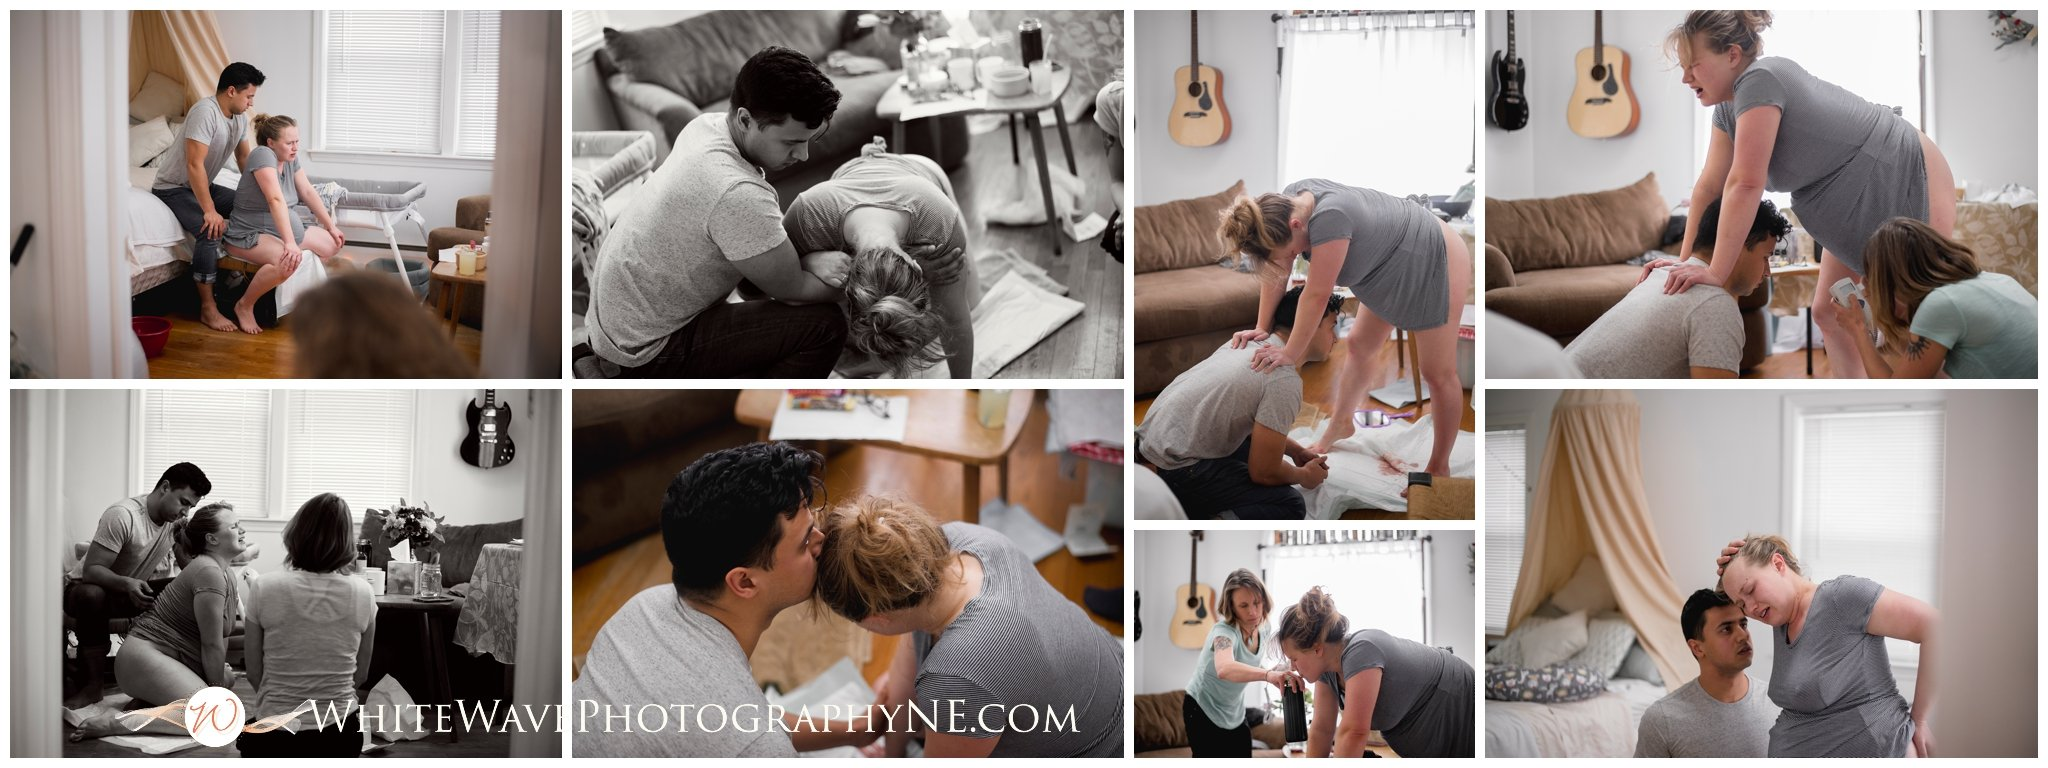 Home-Birth-NH, Birth-Photography, Birth-Photographer-NH, White-Wave-Photography